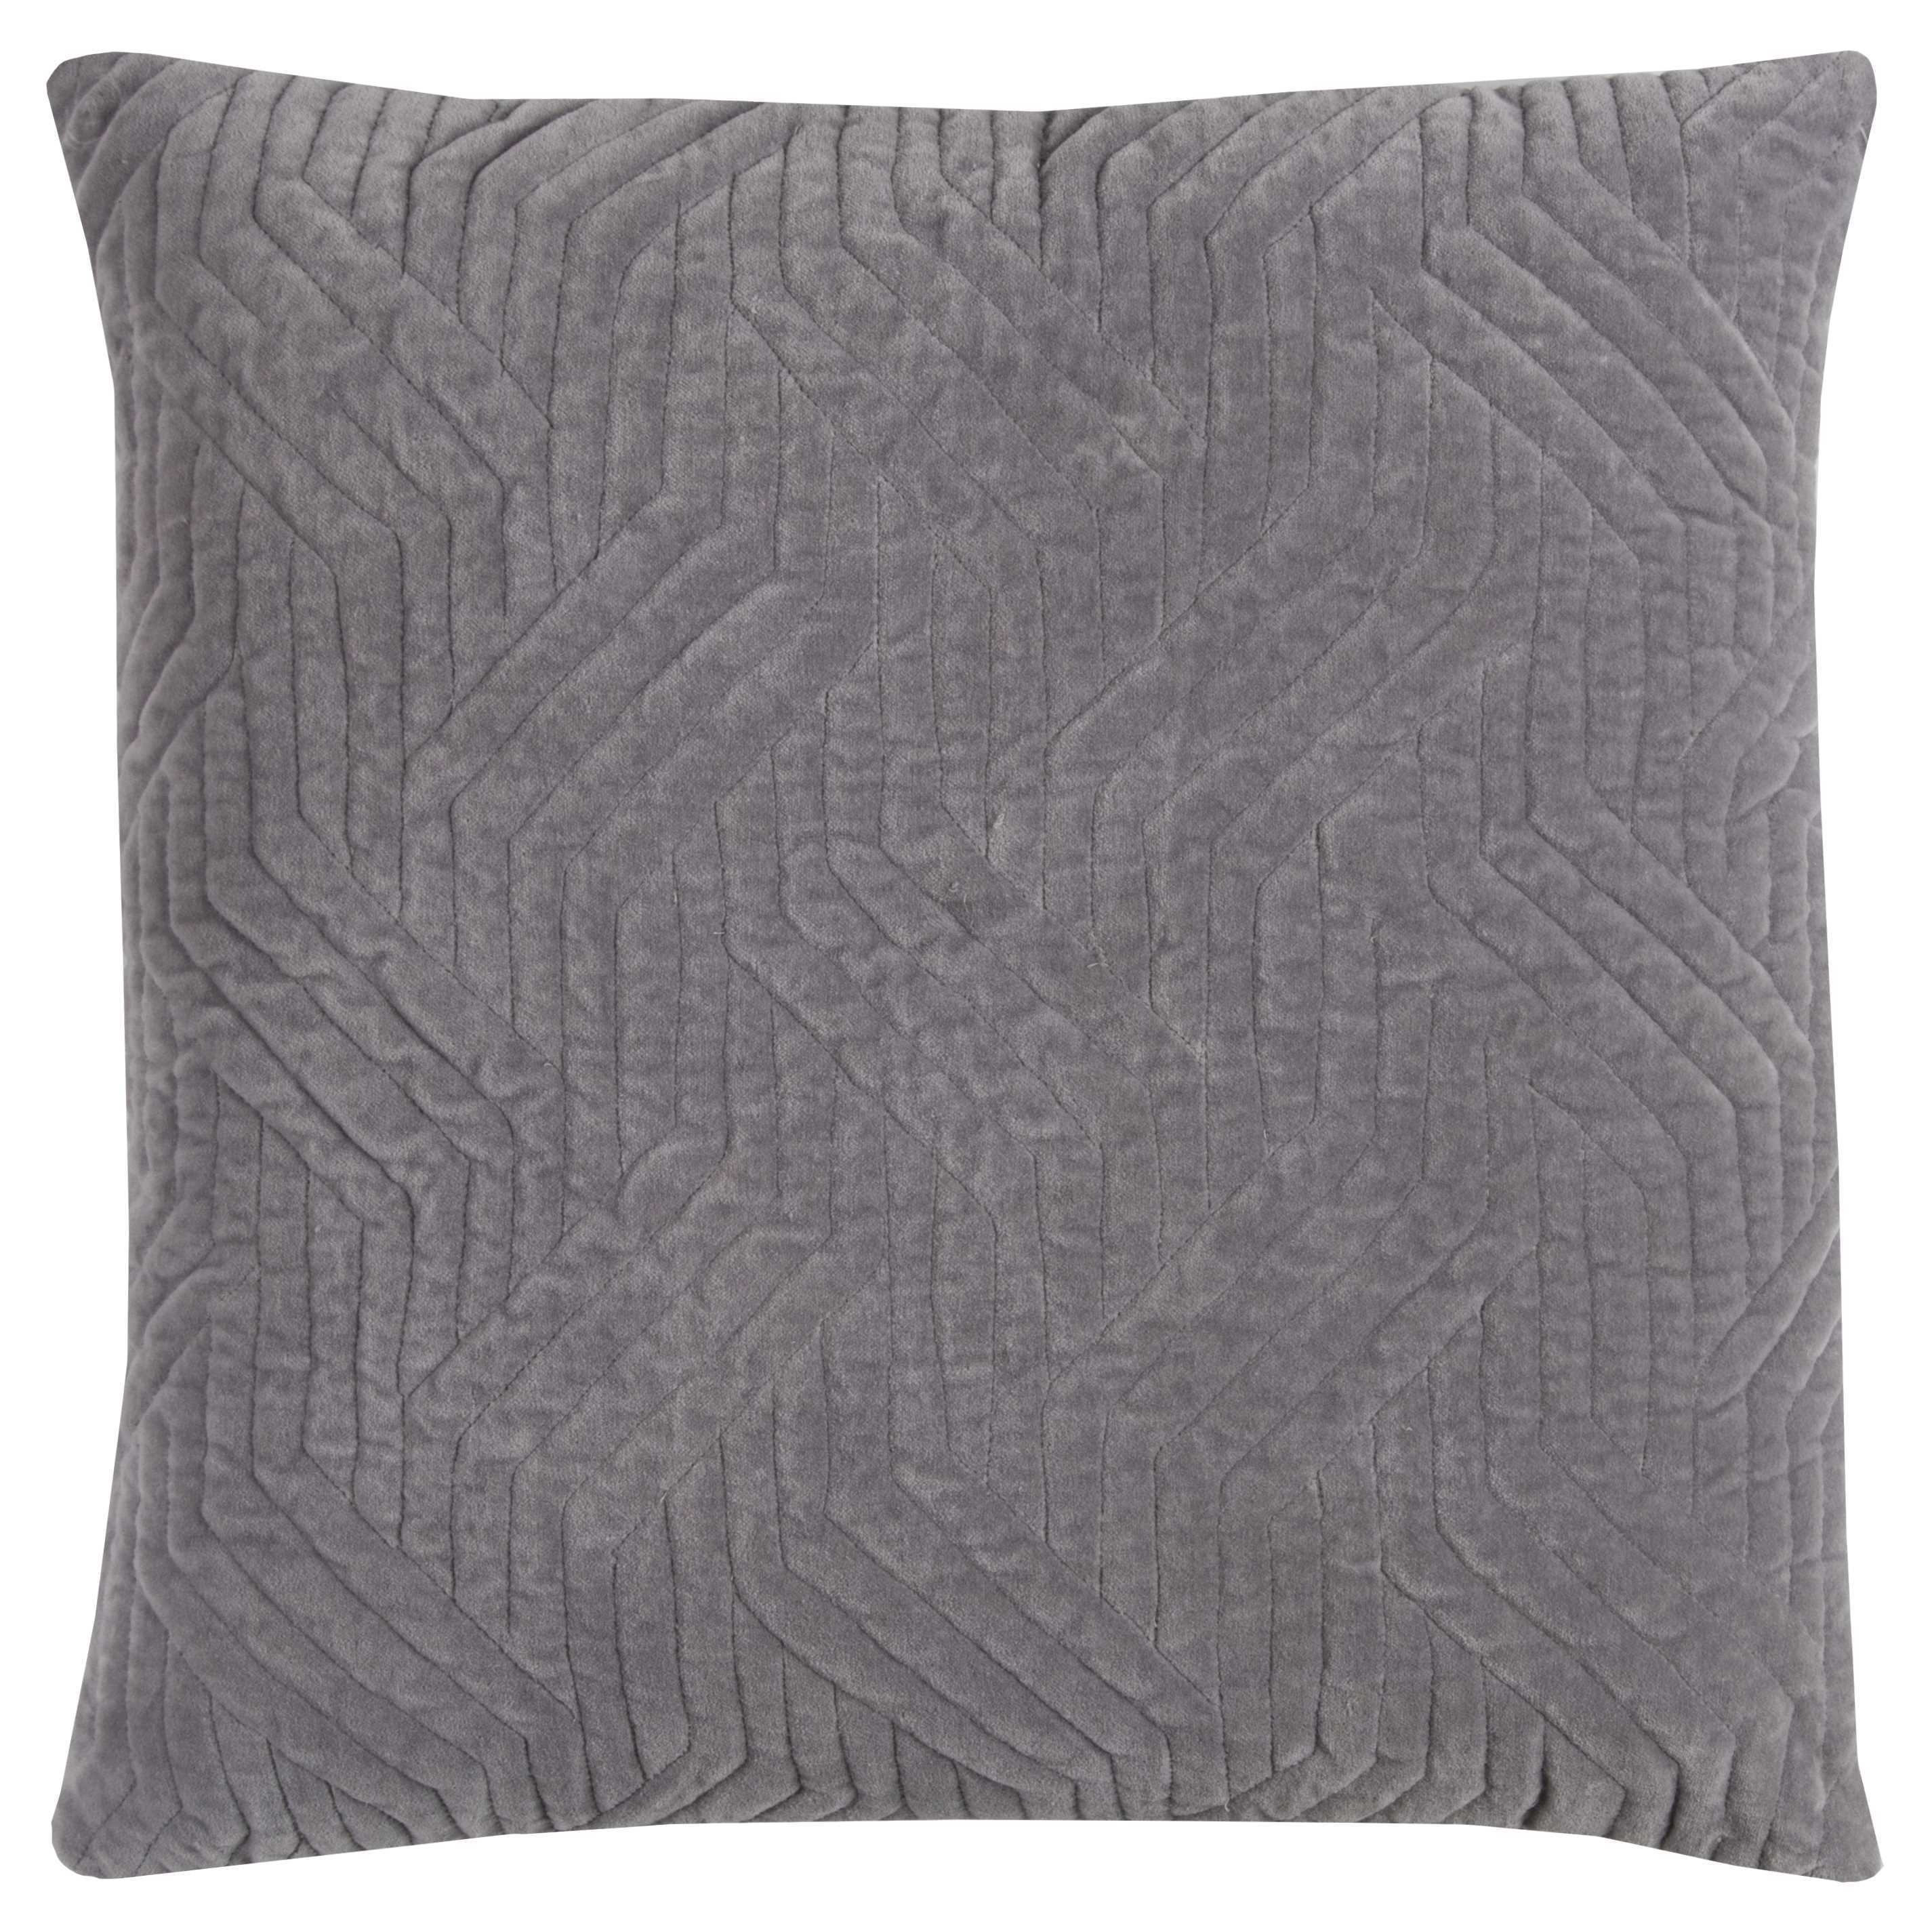 Rizzy Home Grey Cotton 20-inch x 20-inch Textural Crosshatching Decorative Filled Throw Pillow (20 x 20 Grey TEXTURAL CROSSHATCHING)